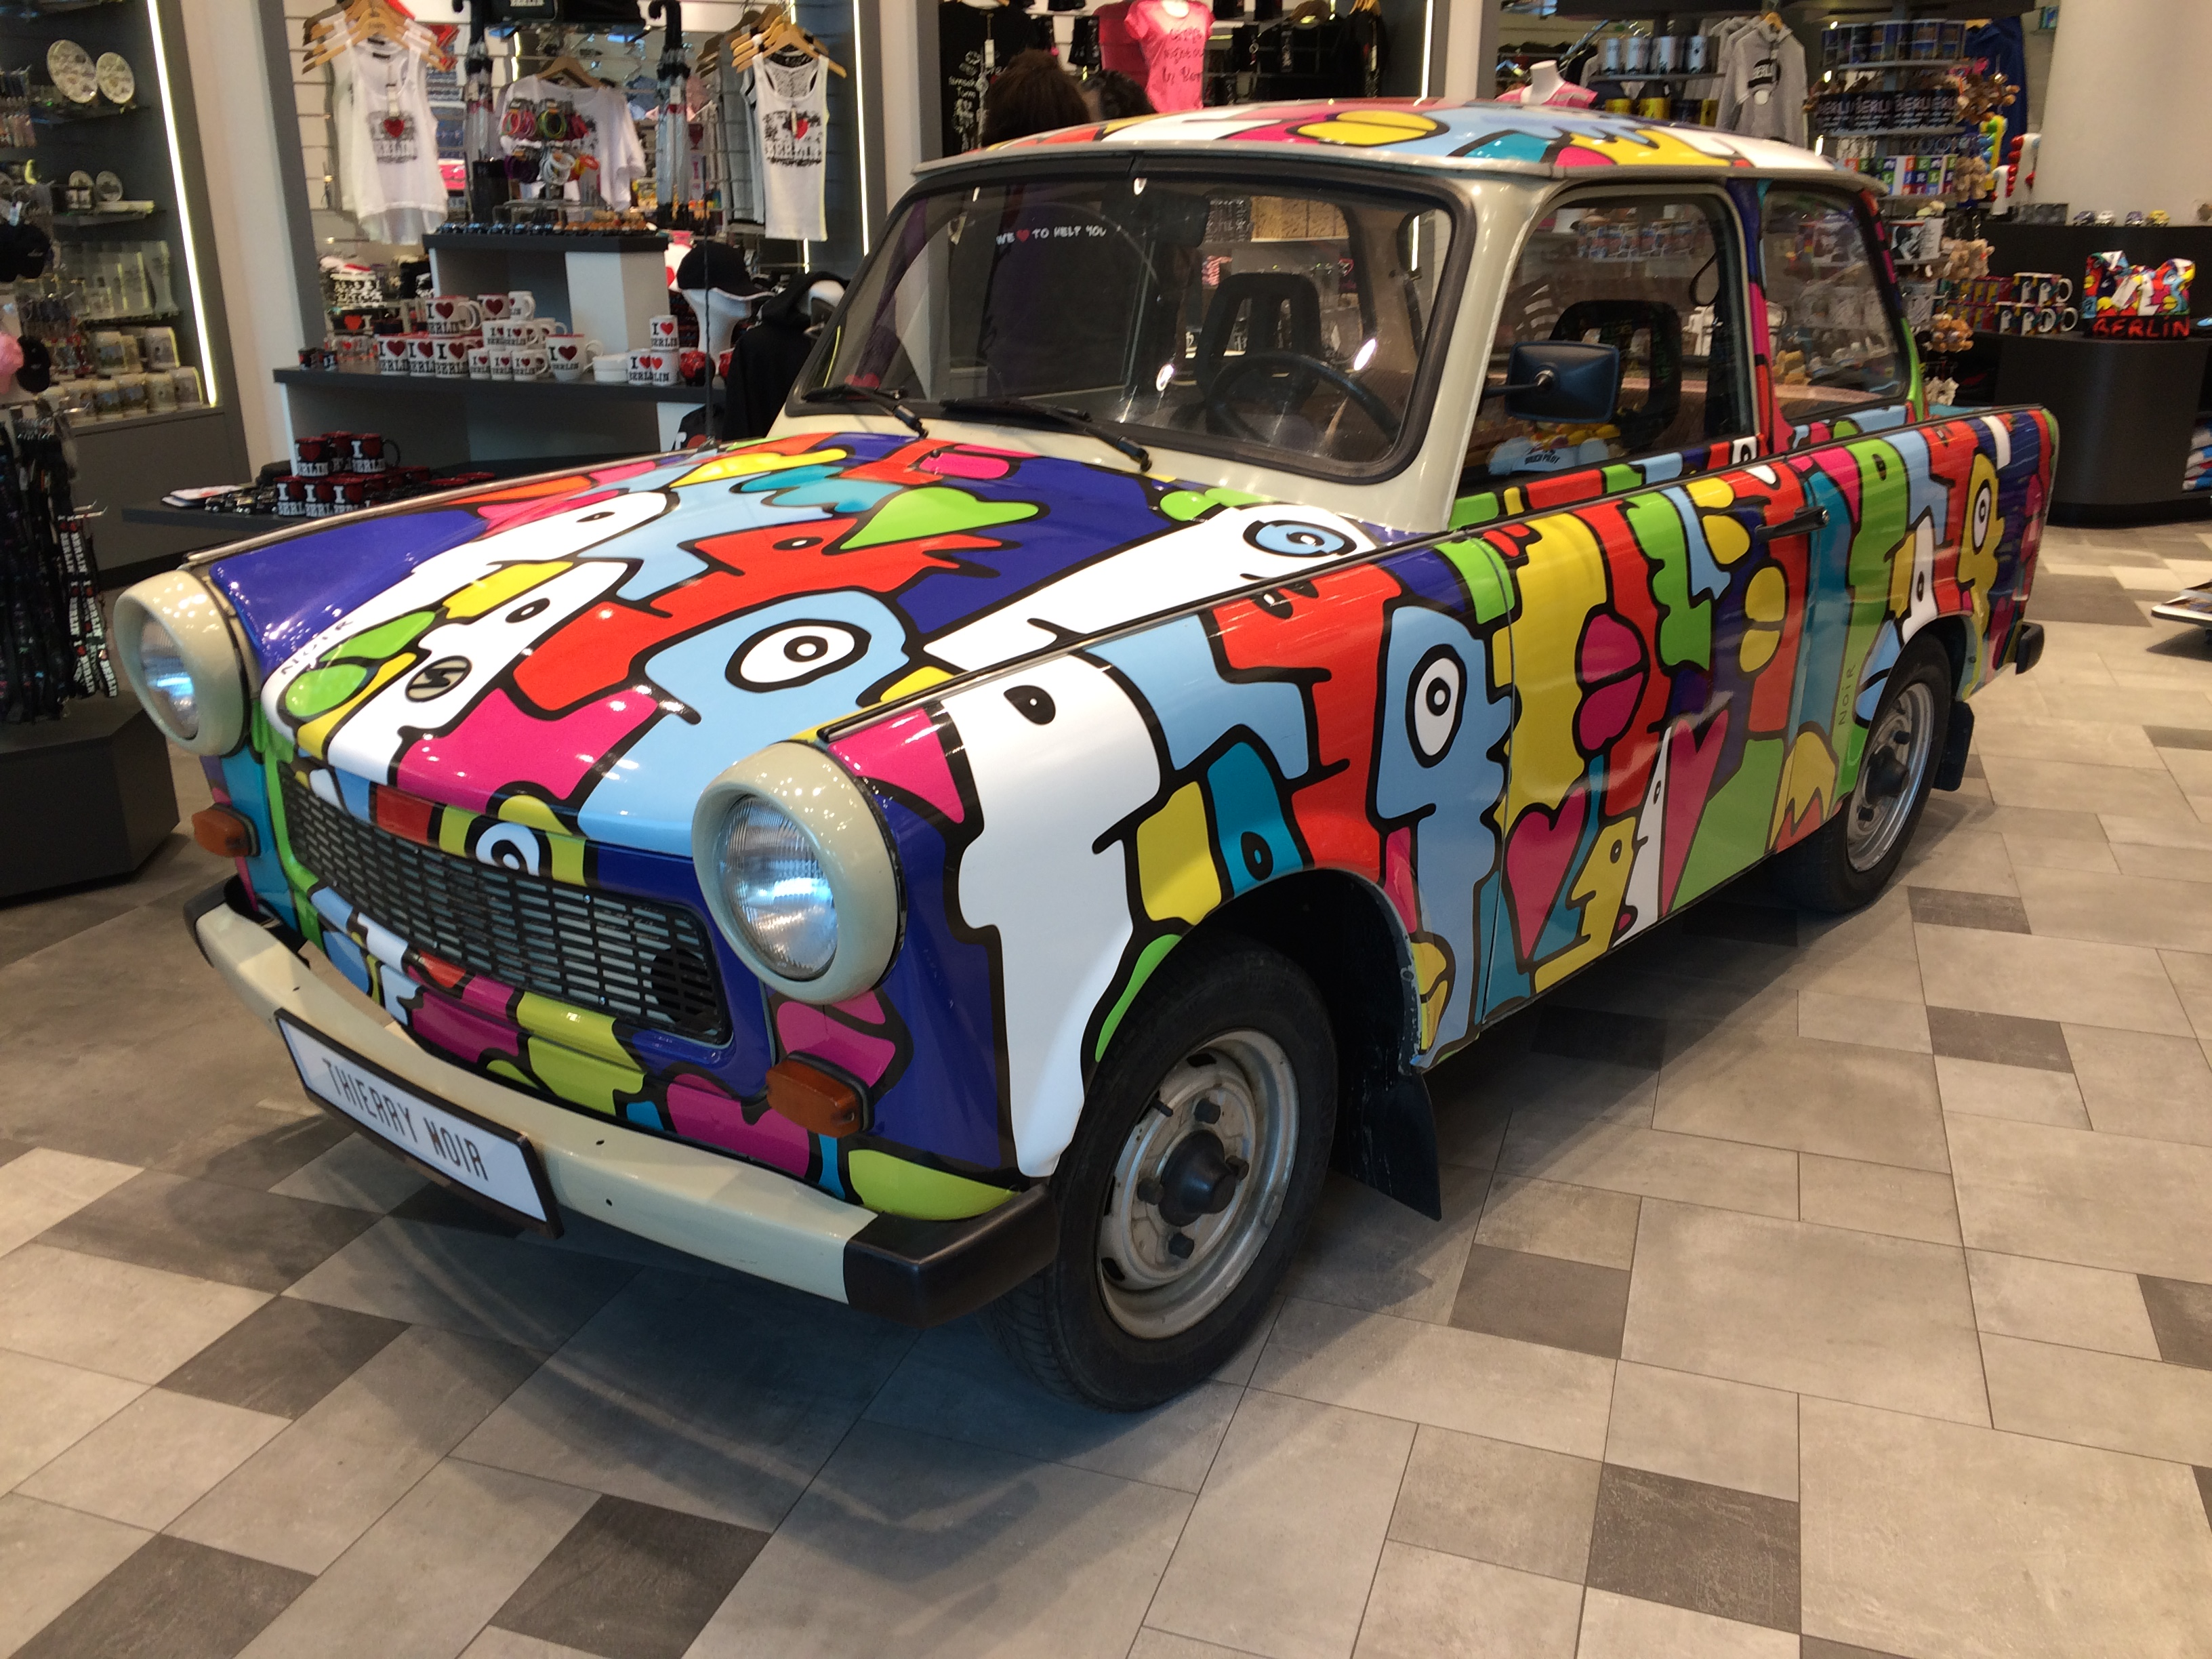 Trabi_at_a_souvenir_shop_in_Berlin.jpg